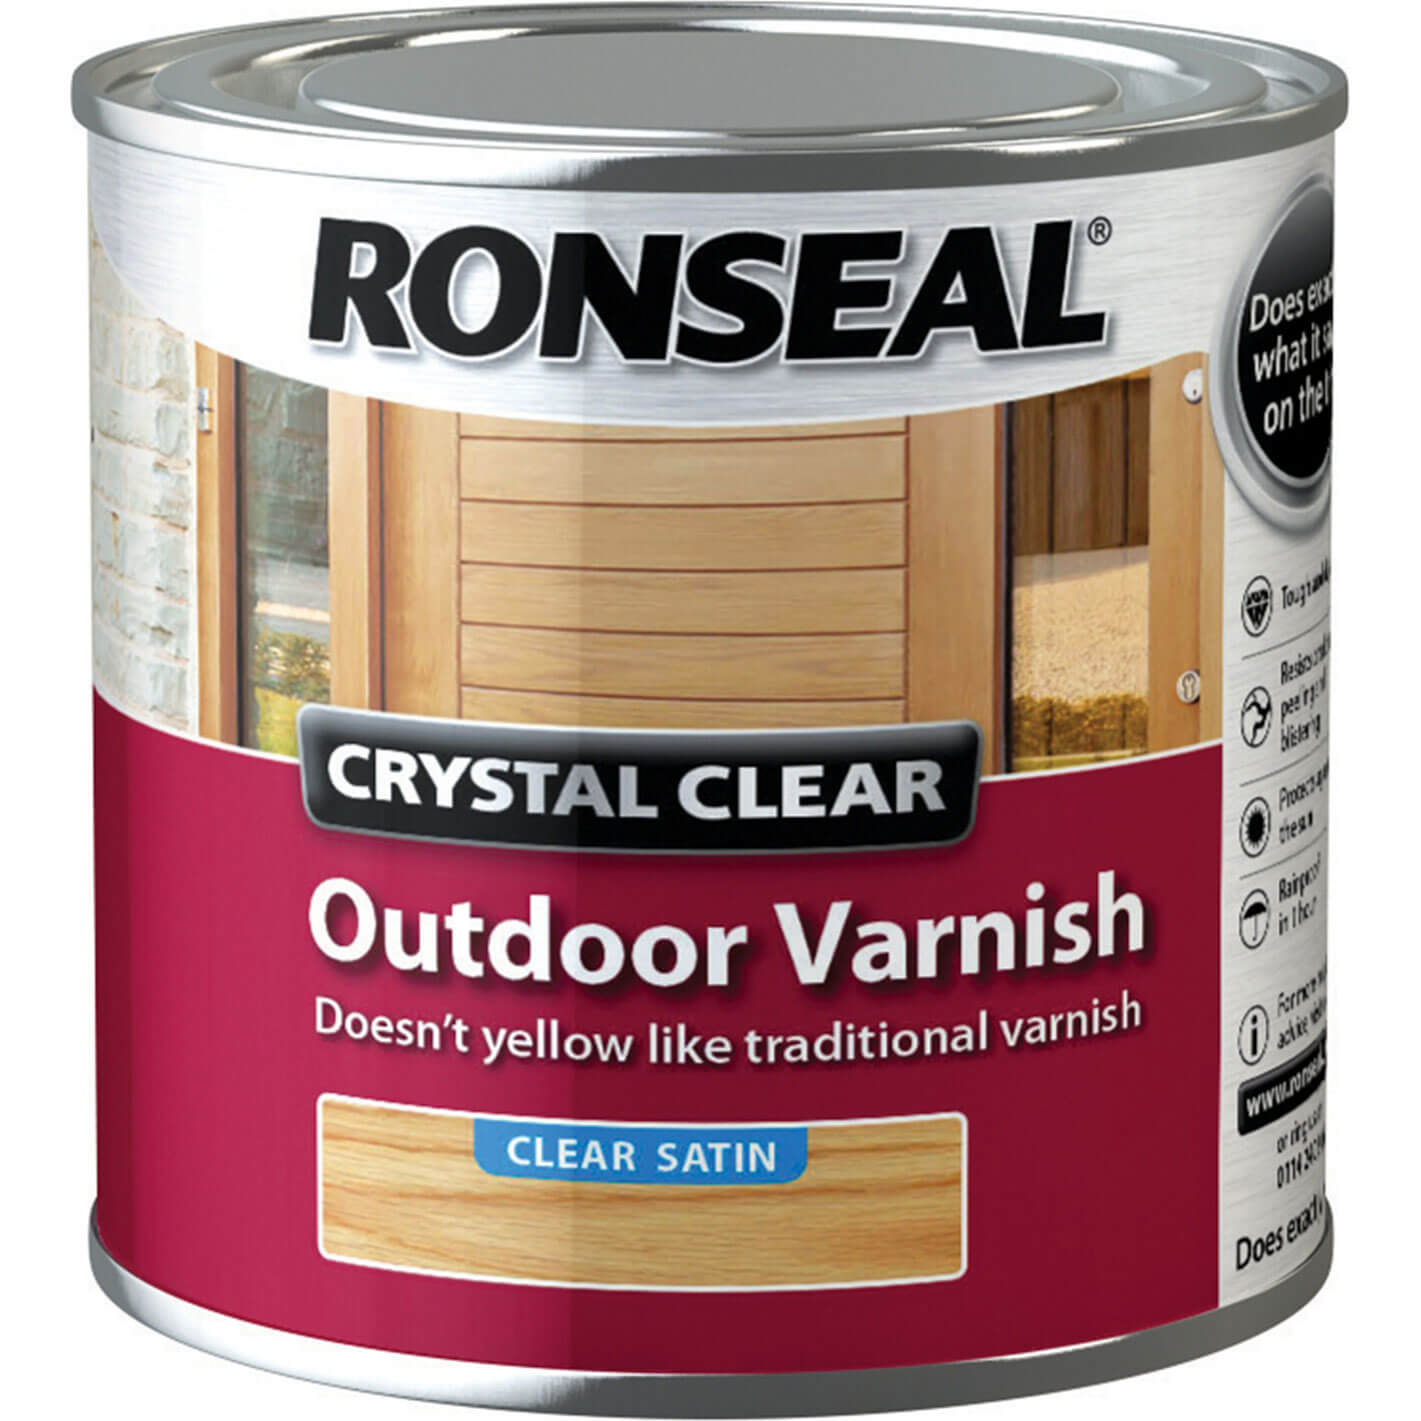 Image of Ronseal Crystal Clear Outdoor Varnish Satin 250ml